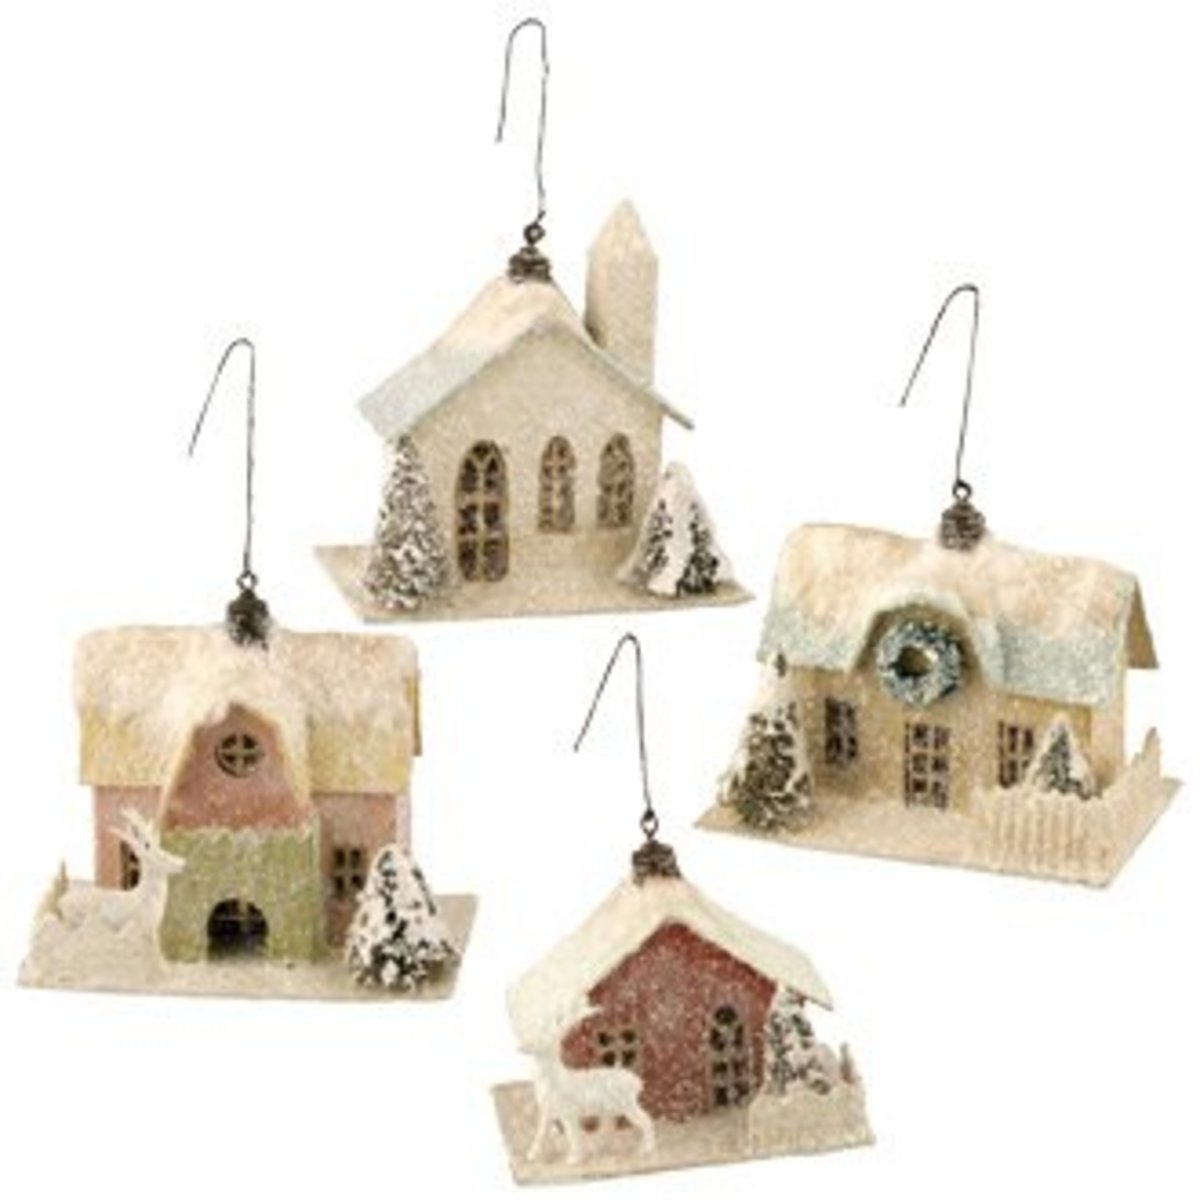 Vintage Christmas Tree Decorations- Village Houses